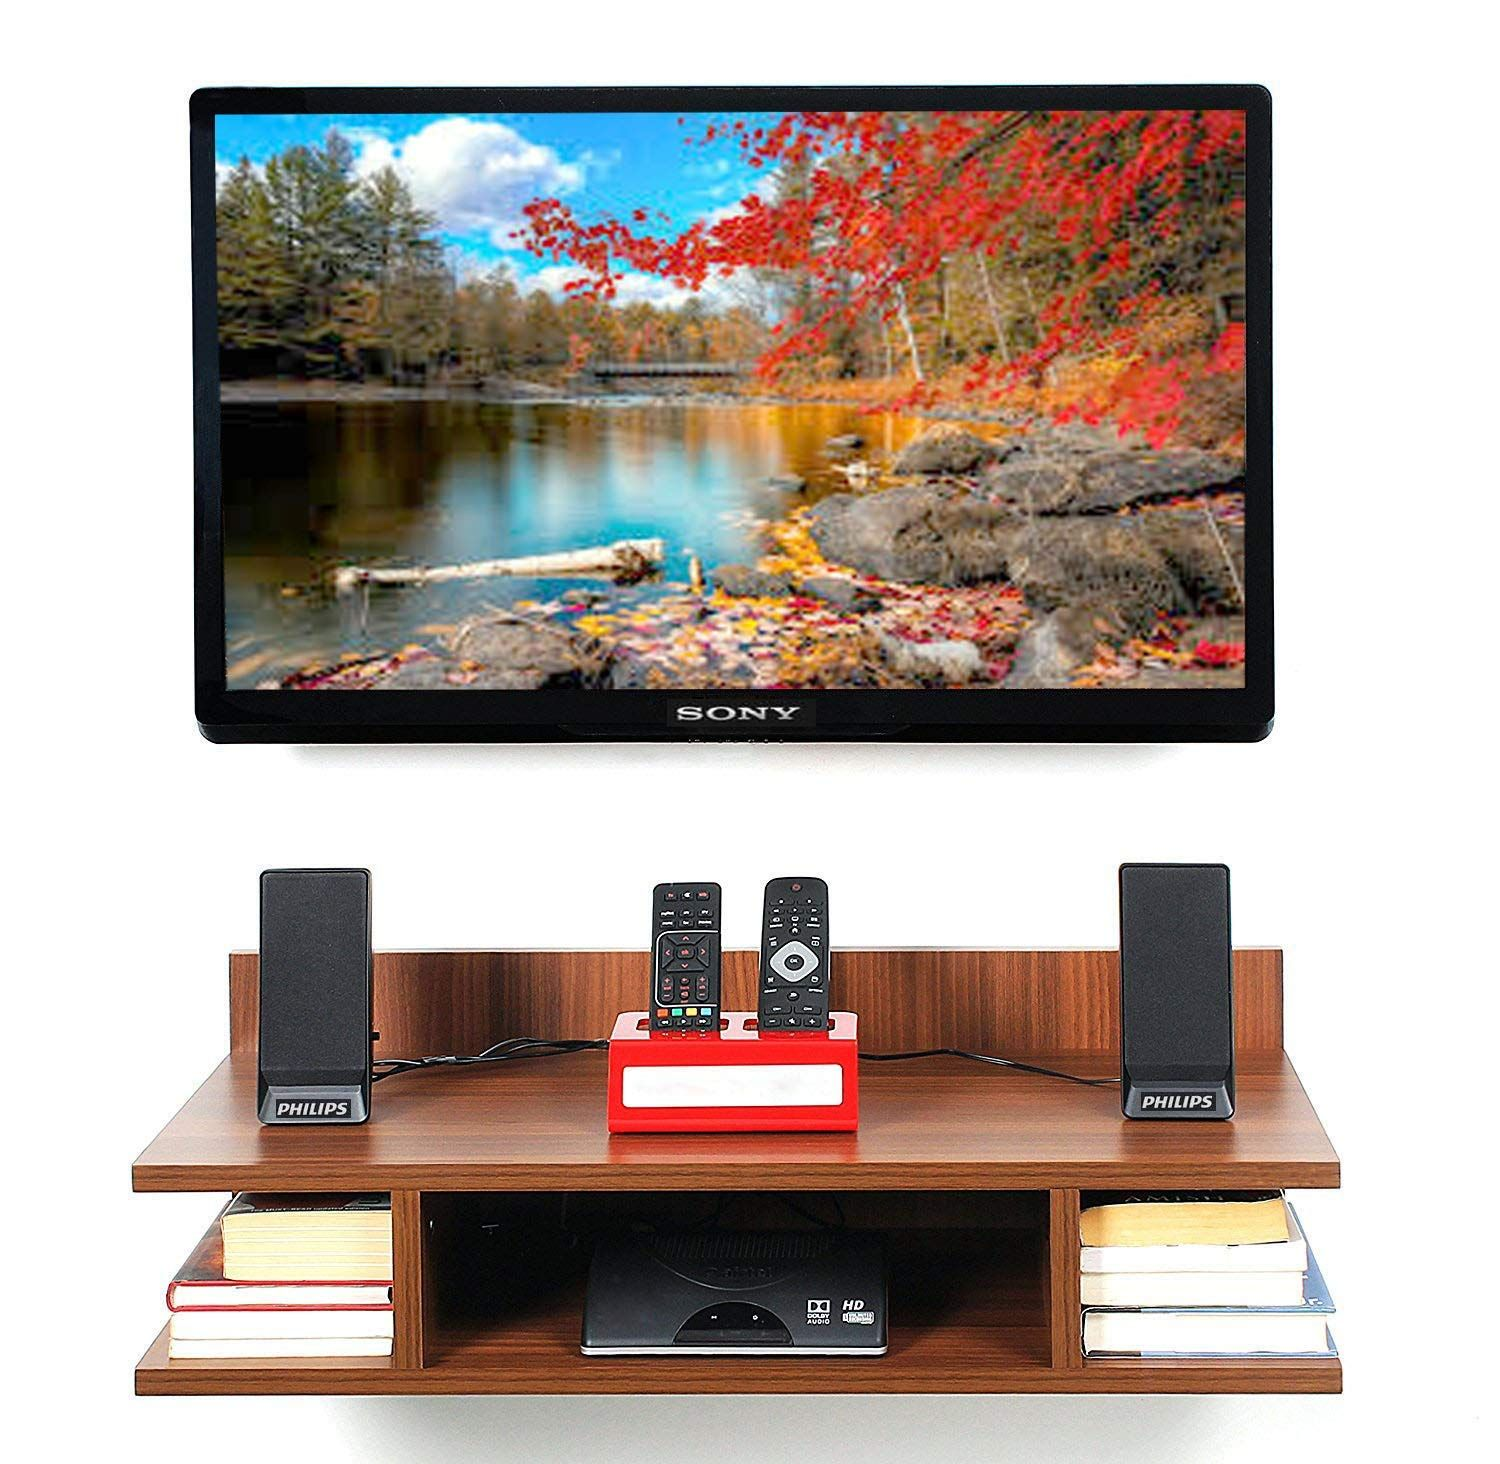 Captiver Wall Mounted Tv Units Wooden Classic Walnut 32 Inch Led Perfect Organizer Showpieces Shelf Shelves R Wall Mounted Tv Wall Mounted Tv Unit Mounted Tv